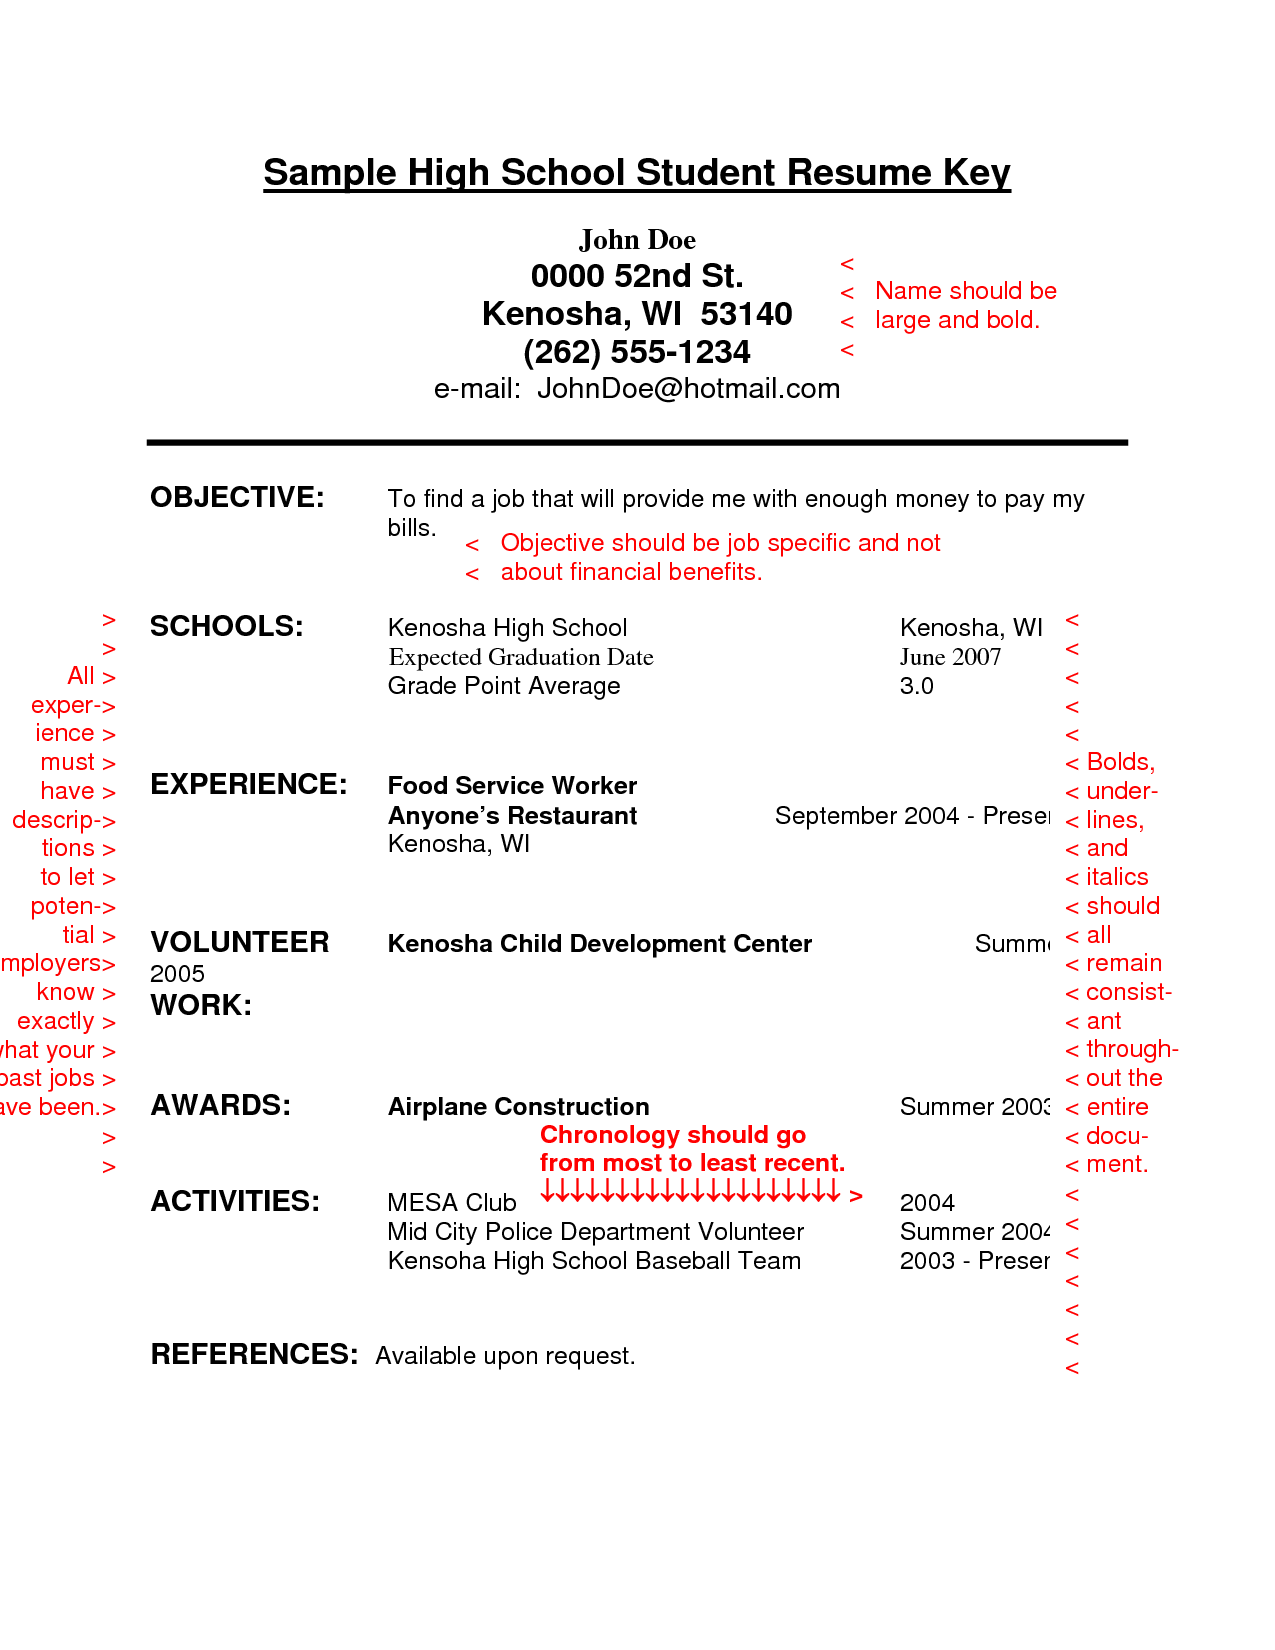 How To Write A Resume Objective Resume Sample For High School Students With No Experience  Http